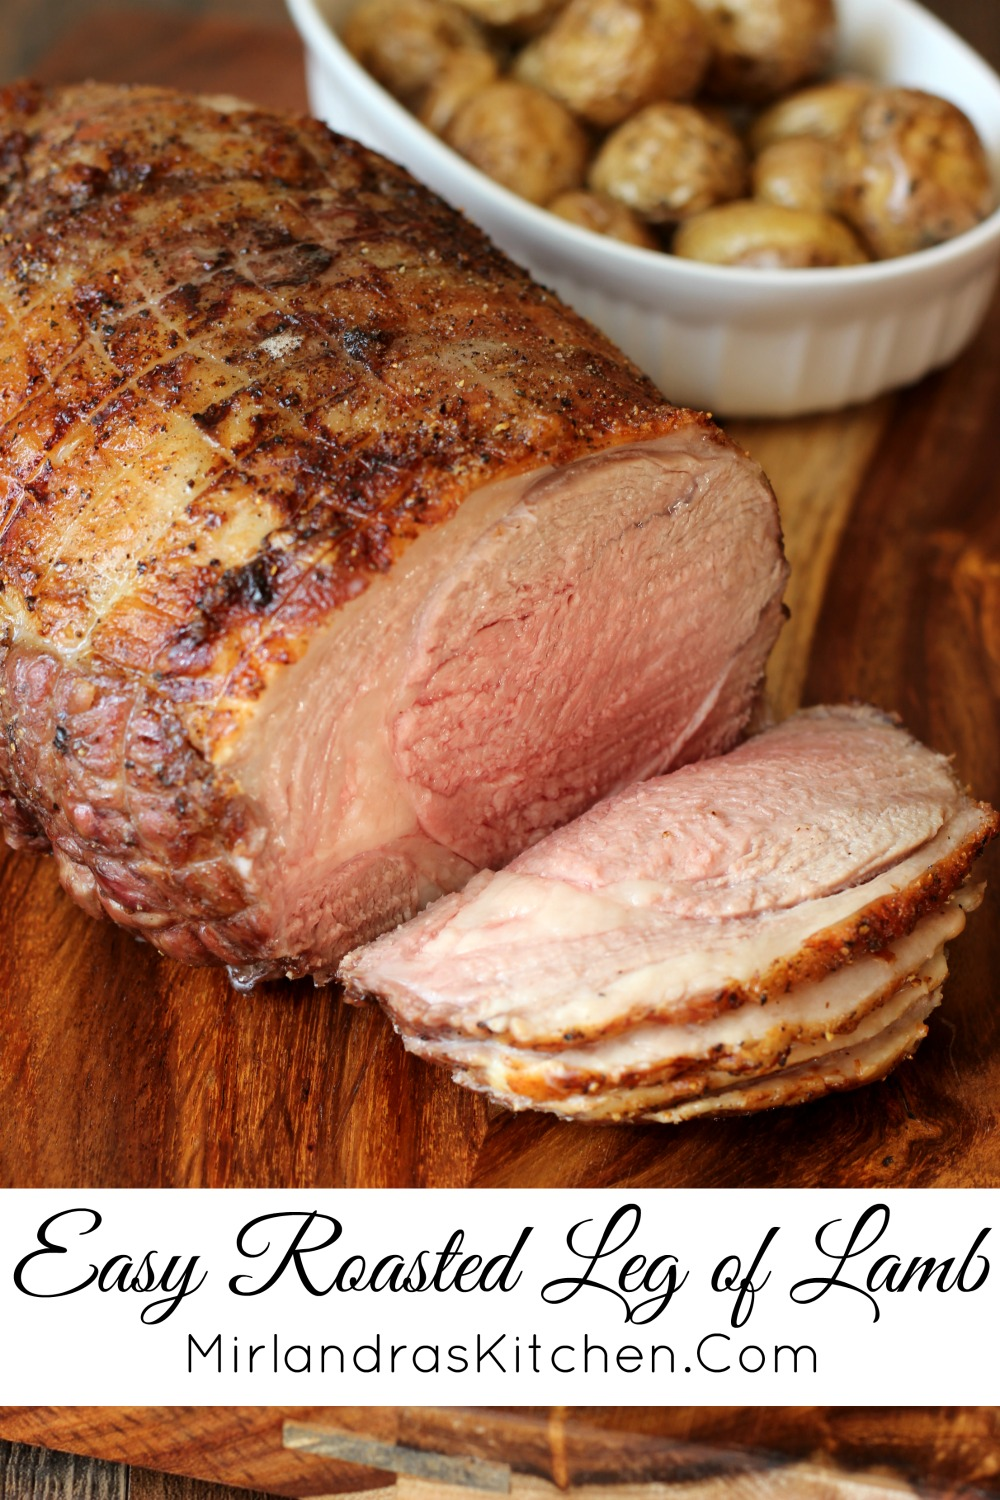 Tender roasted Leg of Lamb is a classic for Easter and other holidays. My simple recipe makes a perfect roast every time.